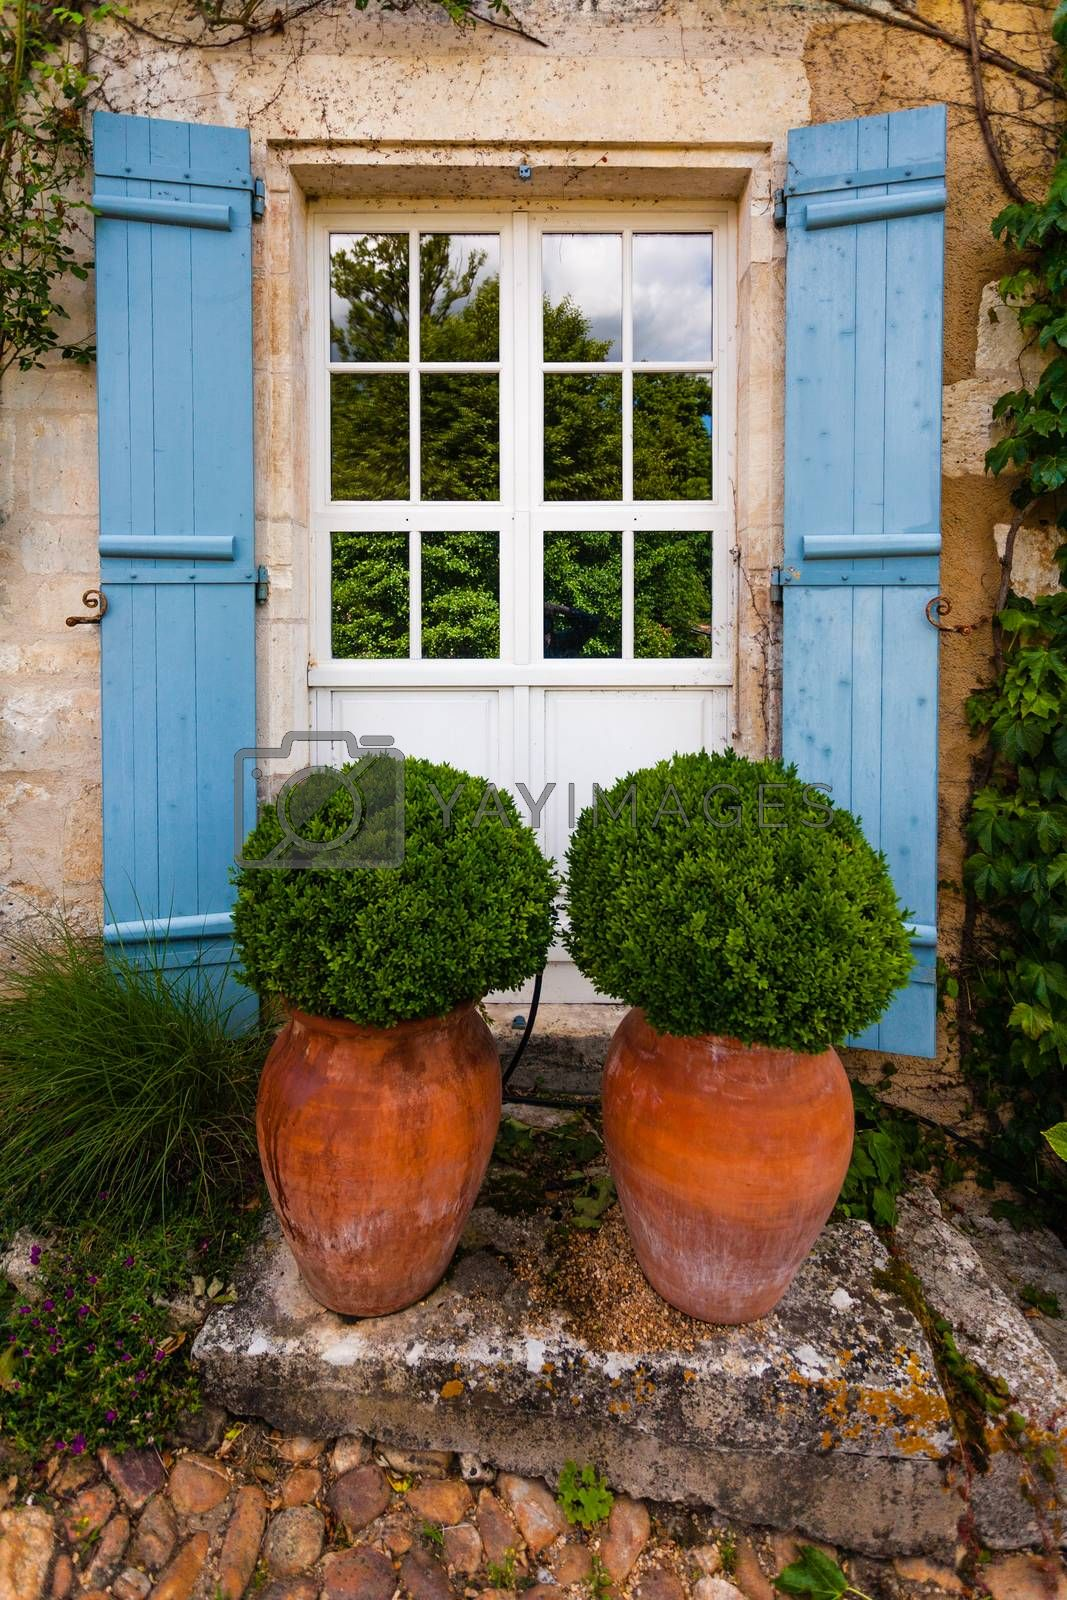 Beautiful gardening composition with two big pots with bojs inside next to a nice door in the countryside of the french region of Dordogne